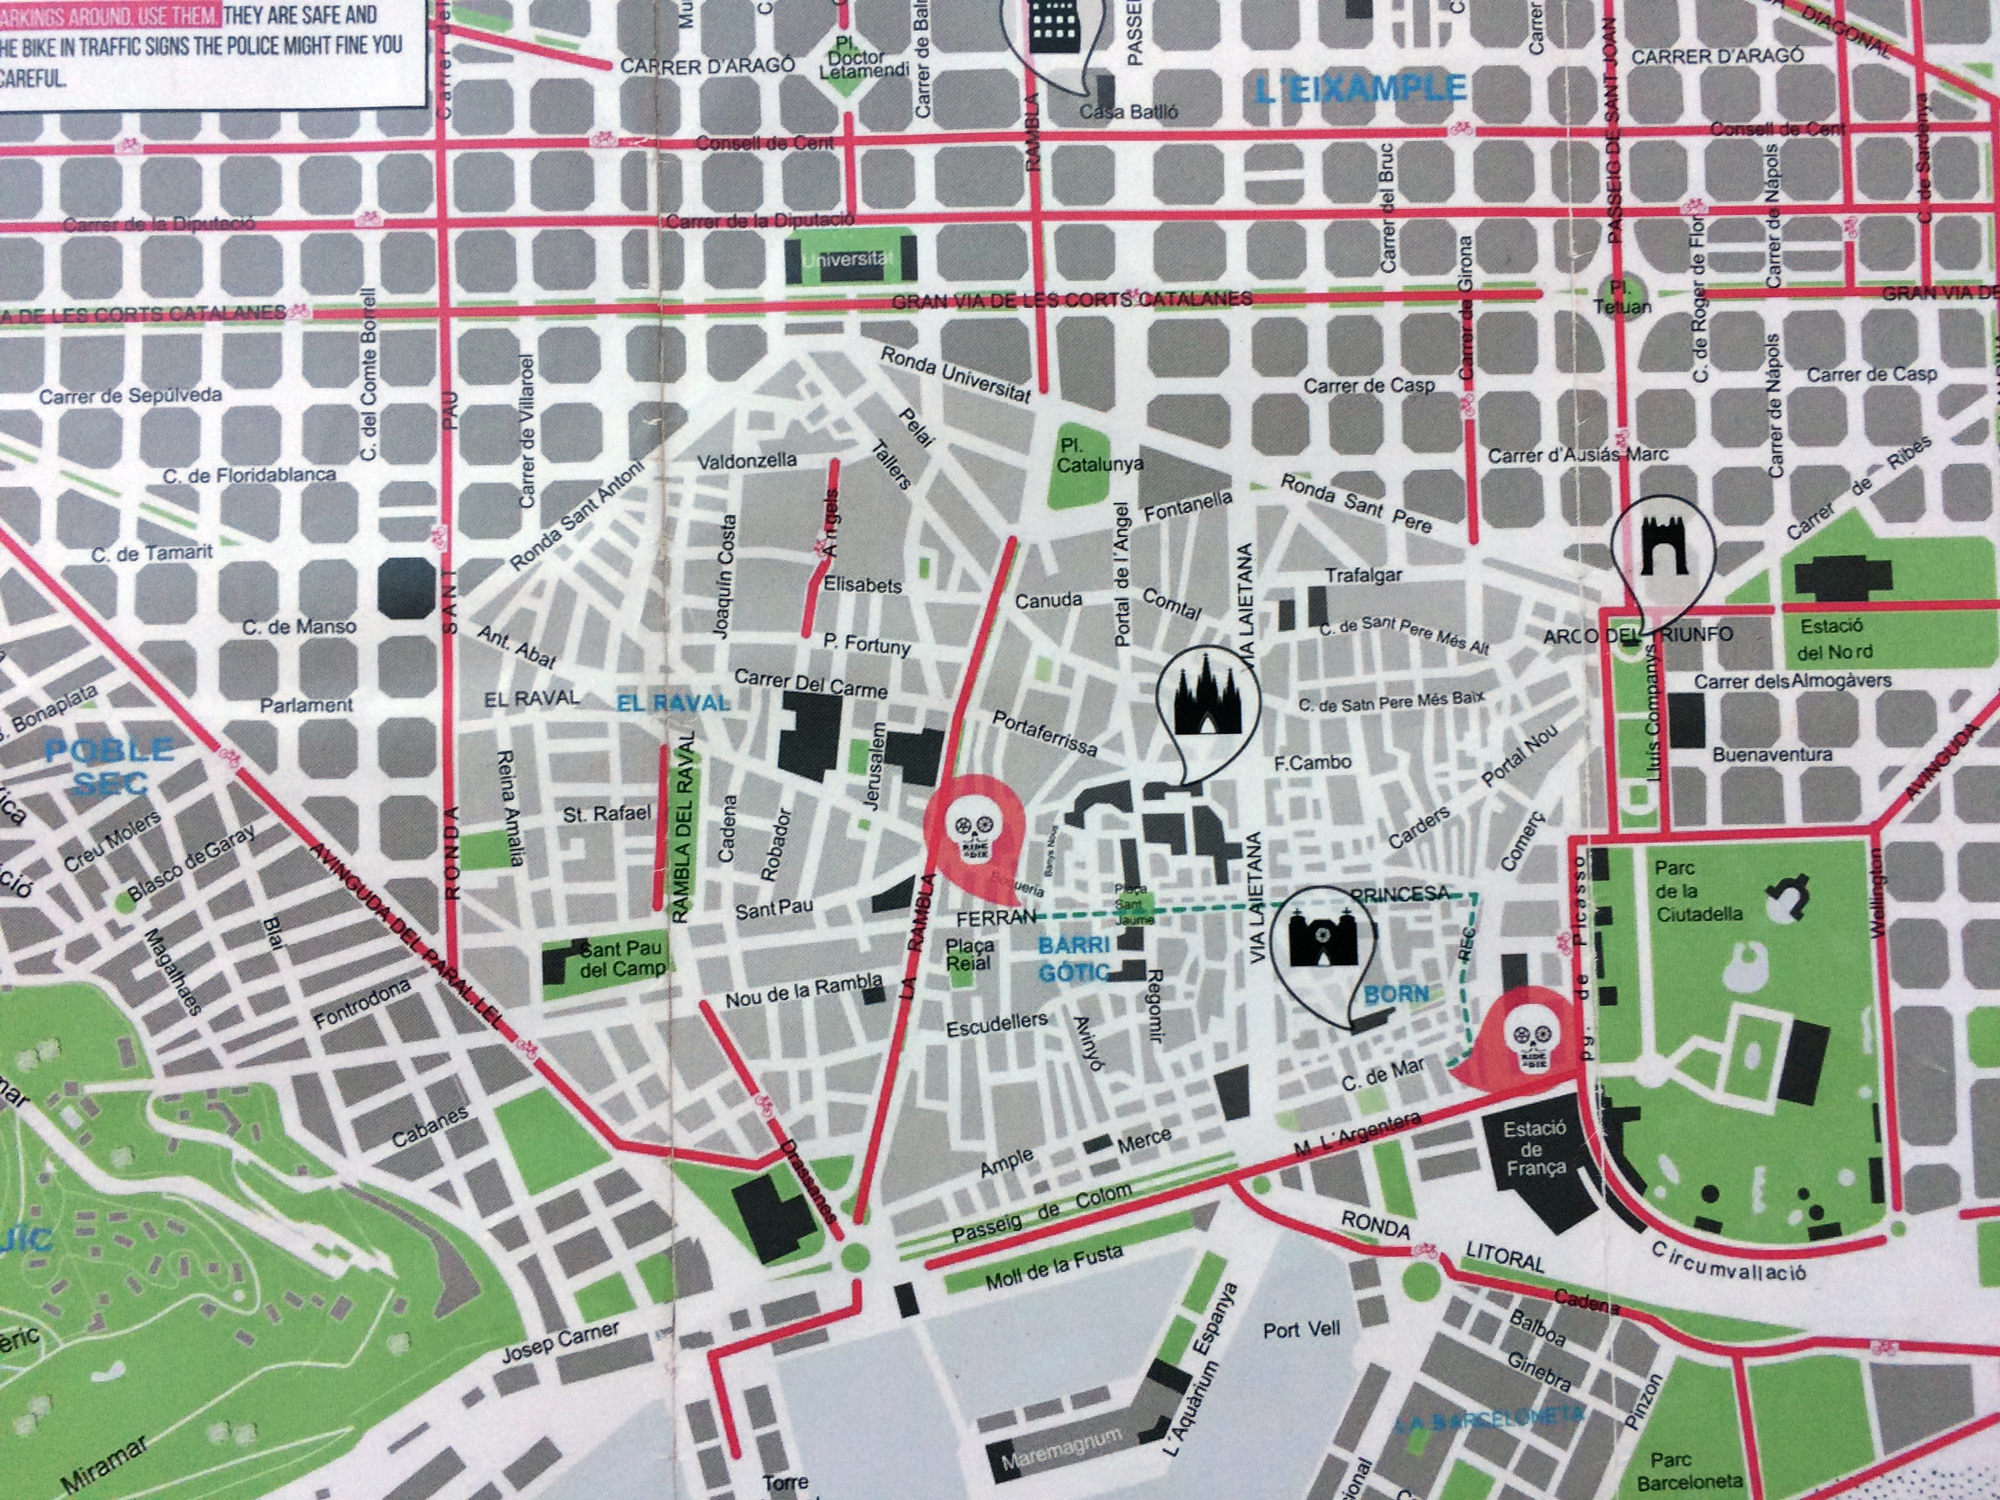 So you want to design a map for Tourists - Maps Everywhere Design A City Map on drawing a city map, create a city map, design a helmet,